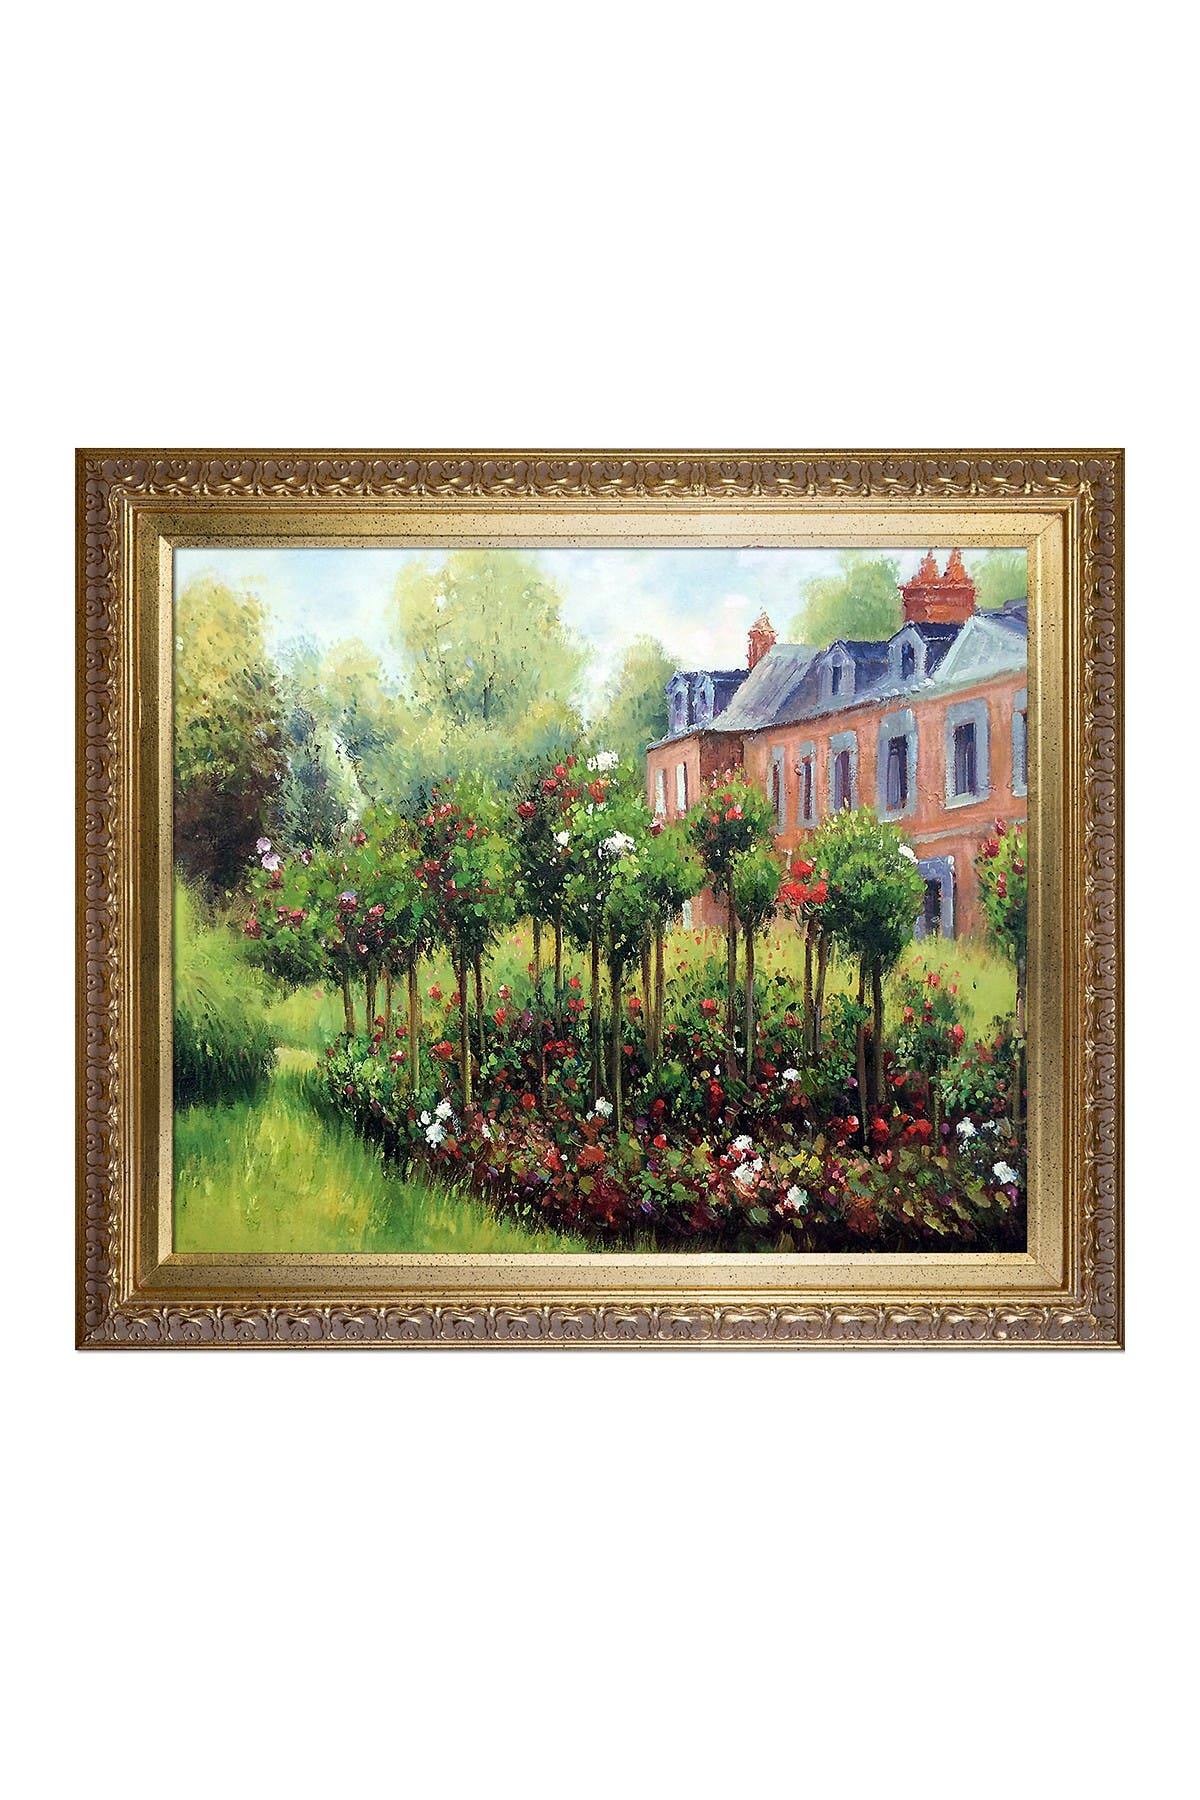 Image of Overstock Art The Rose Garden at Wargemont, 1879 Framed Hand Painted Oil Reproduction